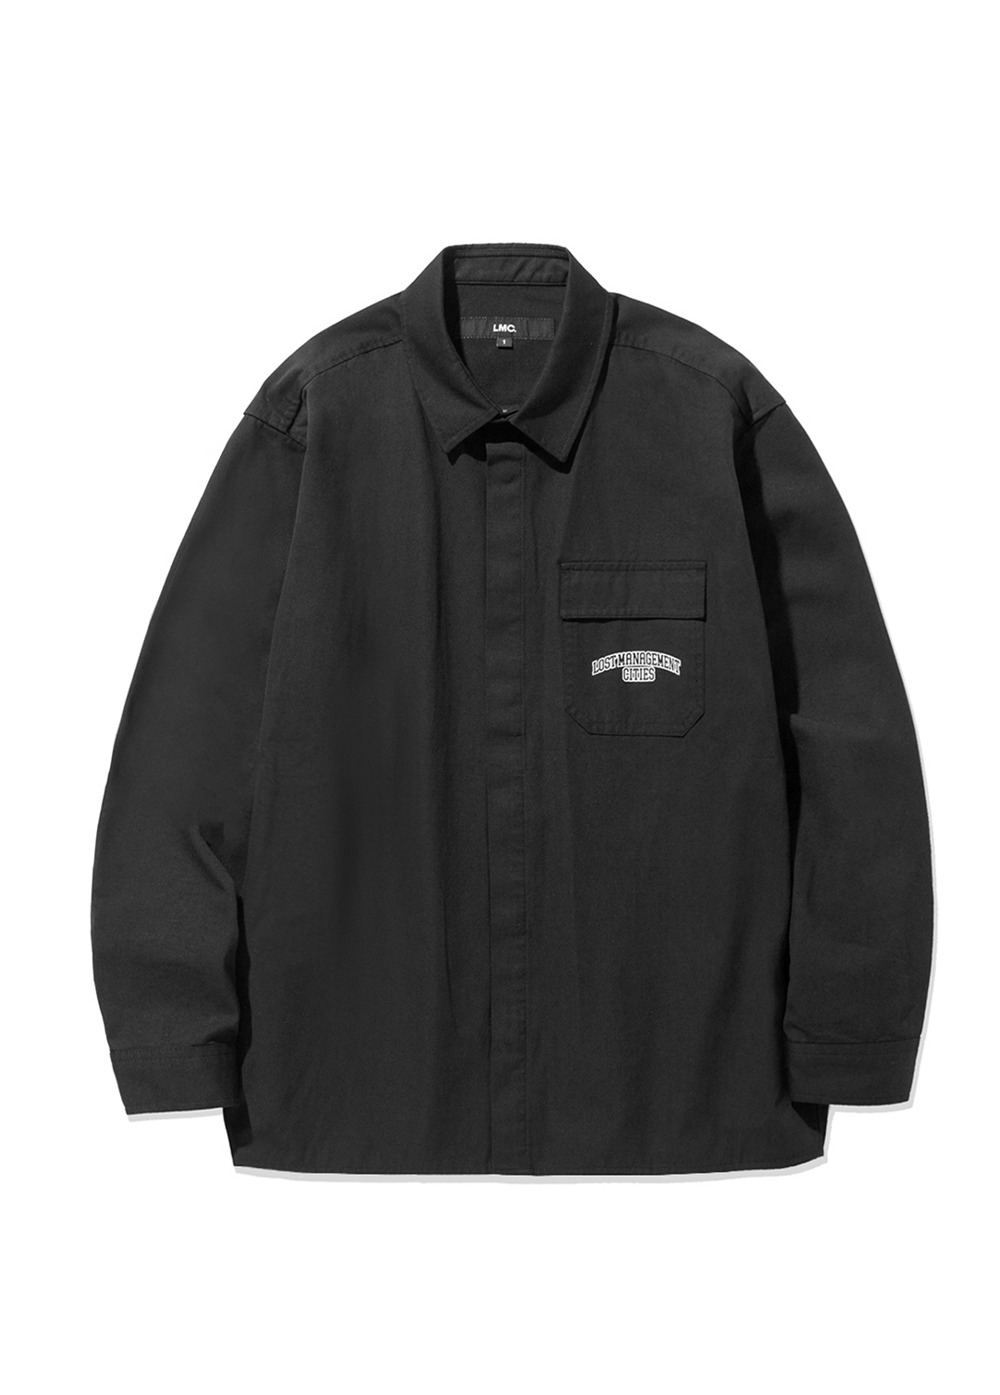 LMC ARCH FN SNAP SHIRT black